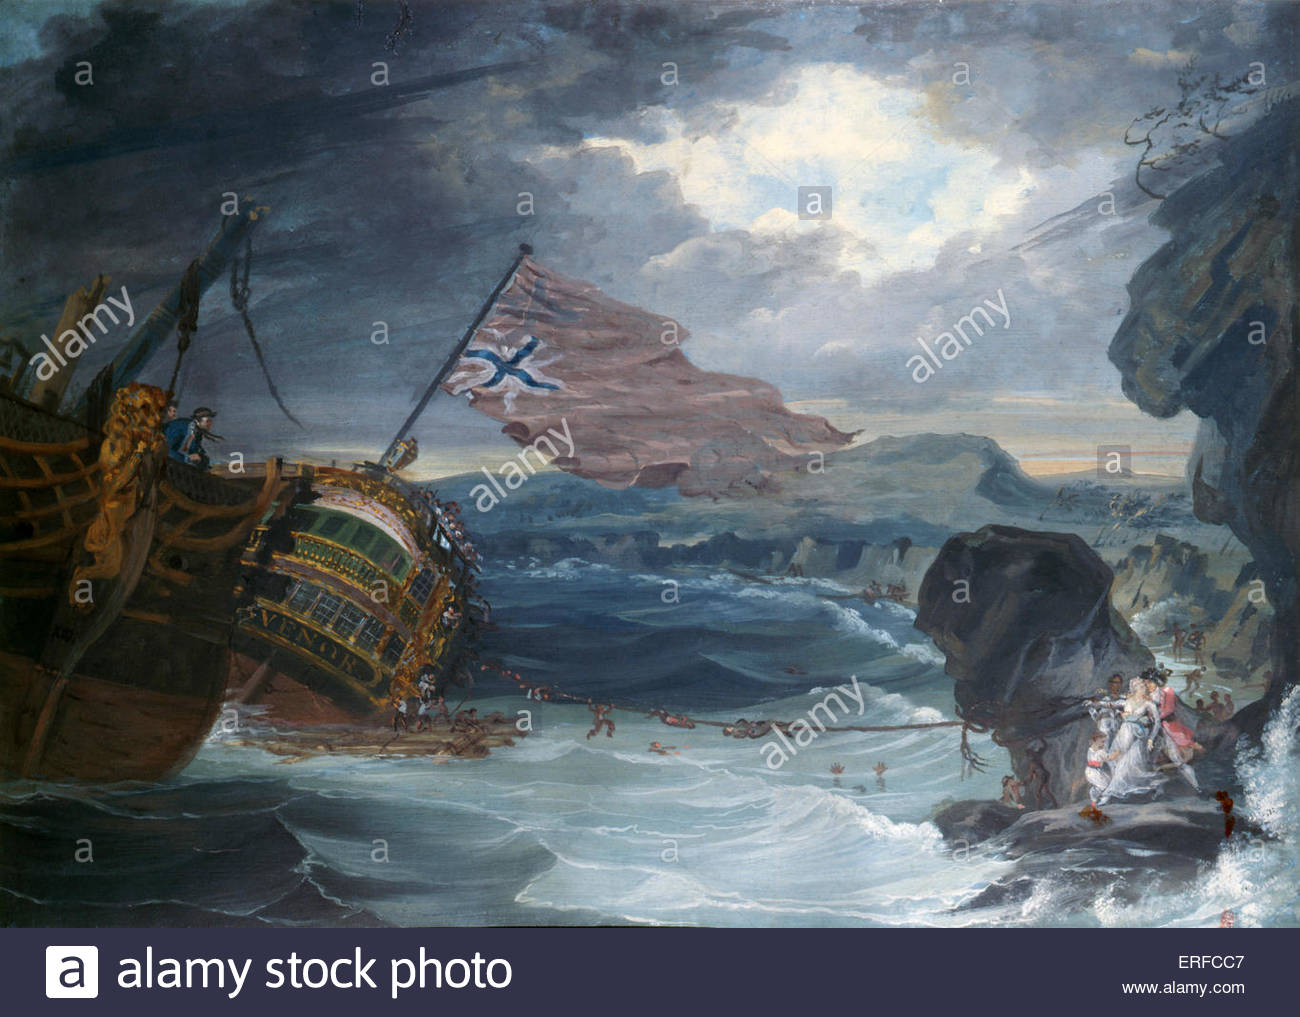 'The Wreck of the Grosvenor', 1782. Gouache by George Carter. Courtesy National Maritime Museum. GC: 1737 - Stock Image